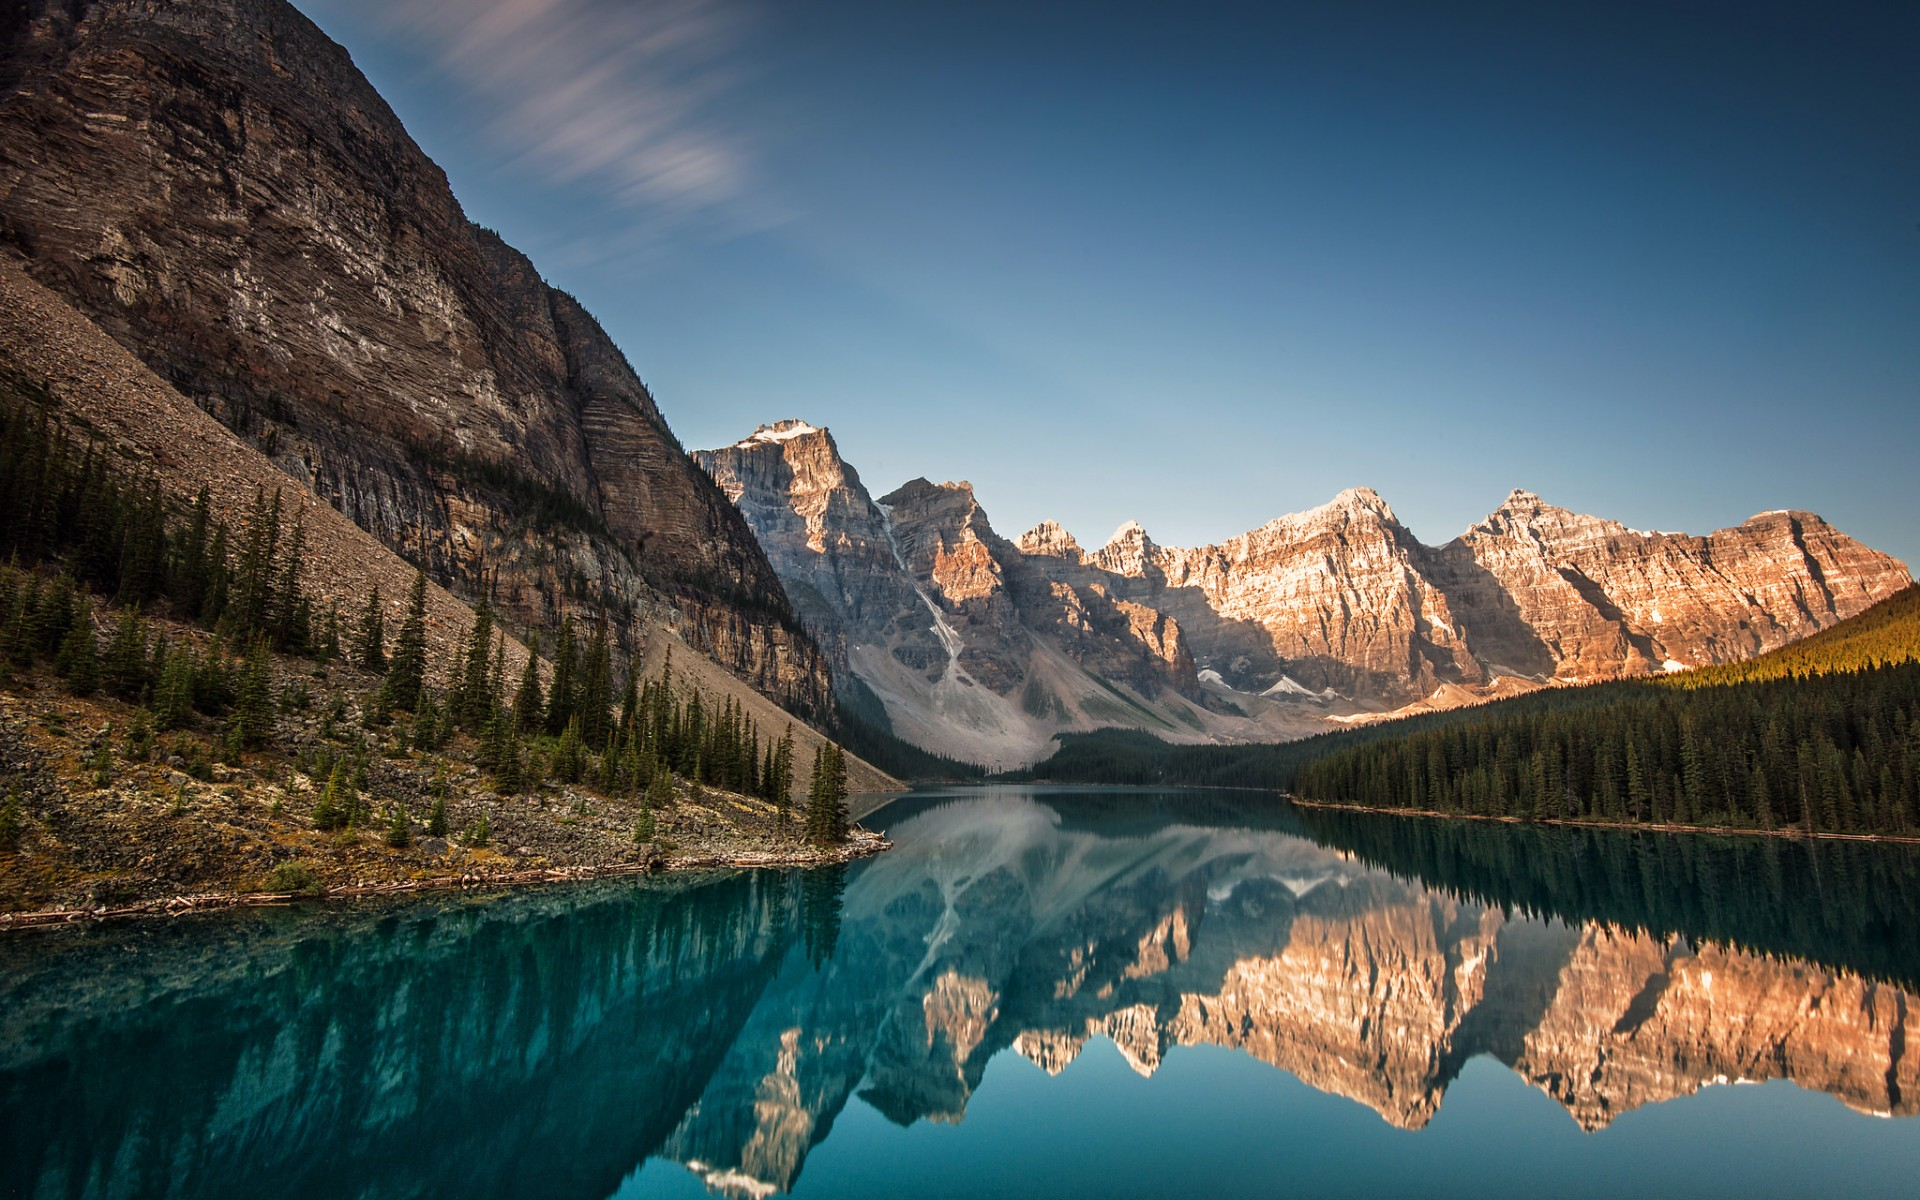 Peaks of mountains mirrored in the lake